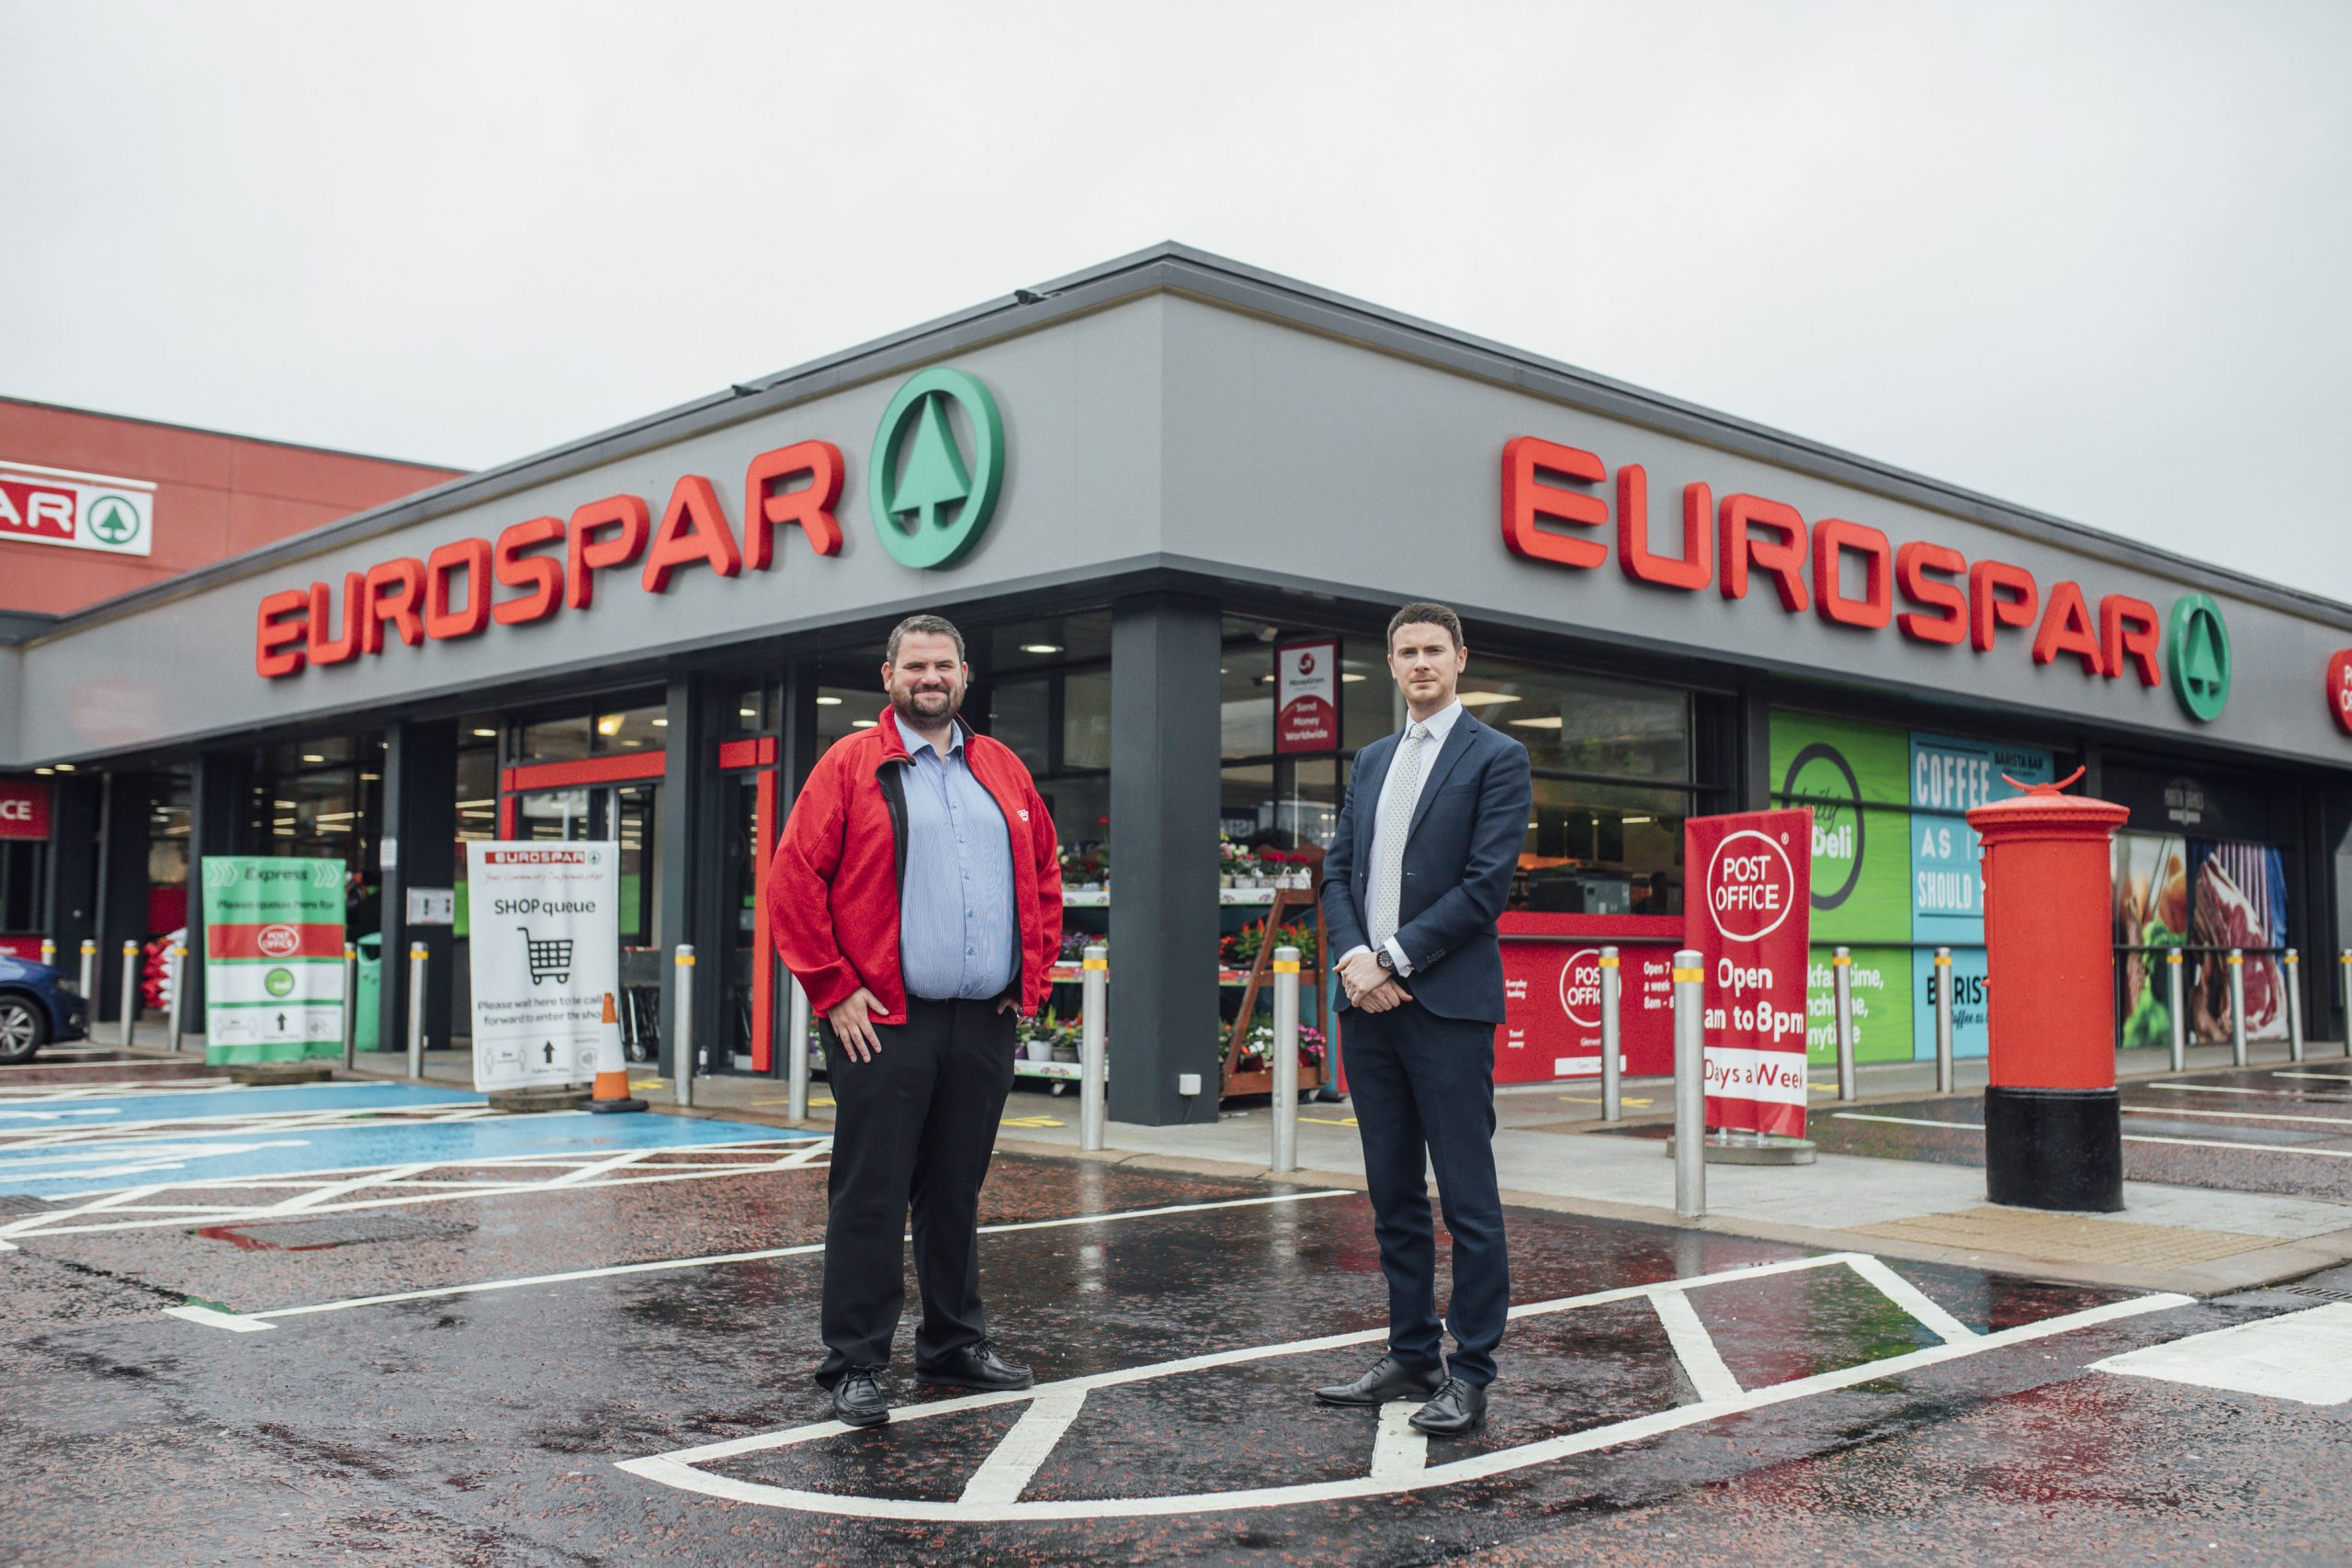 Henderson Retail debuts its first Electronic Shelf Edge Price Display Labels in renovated Glengormley Supermarket